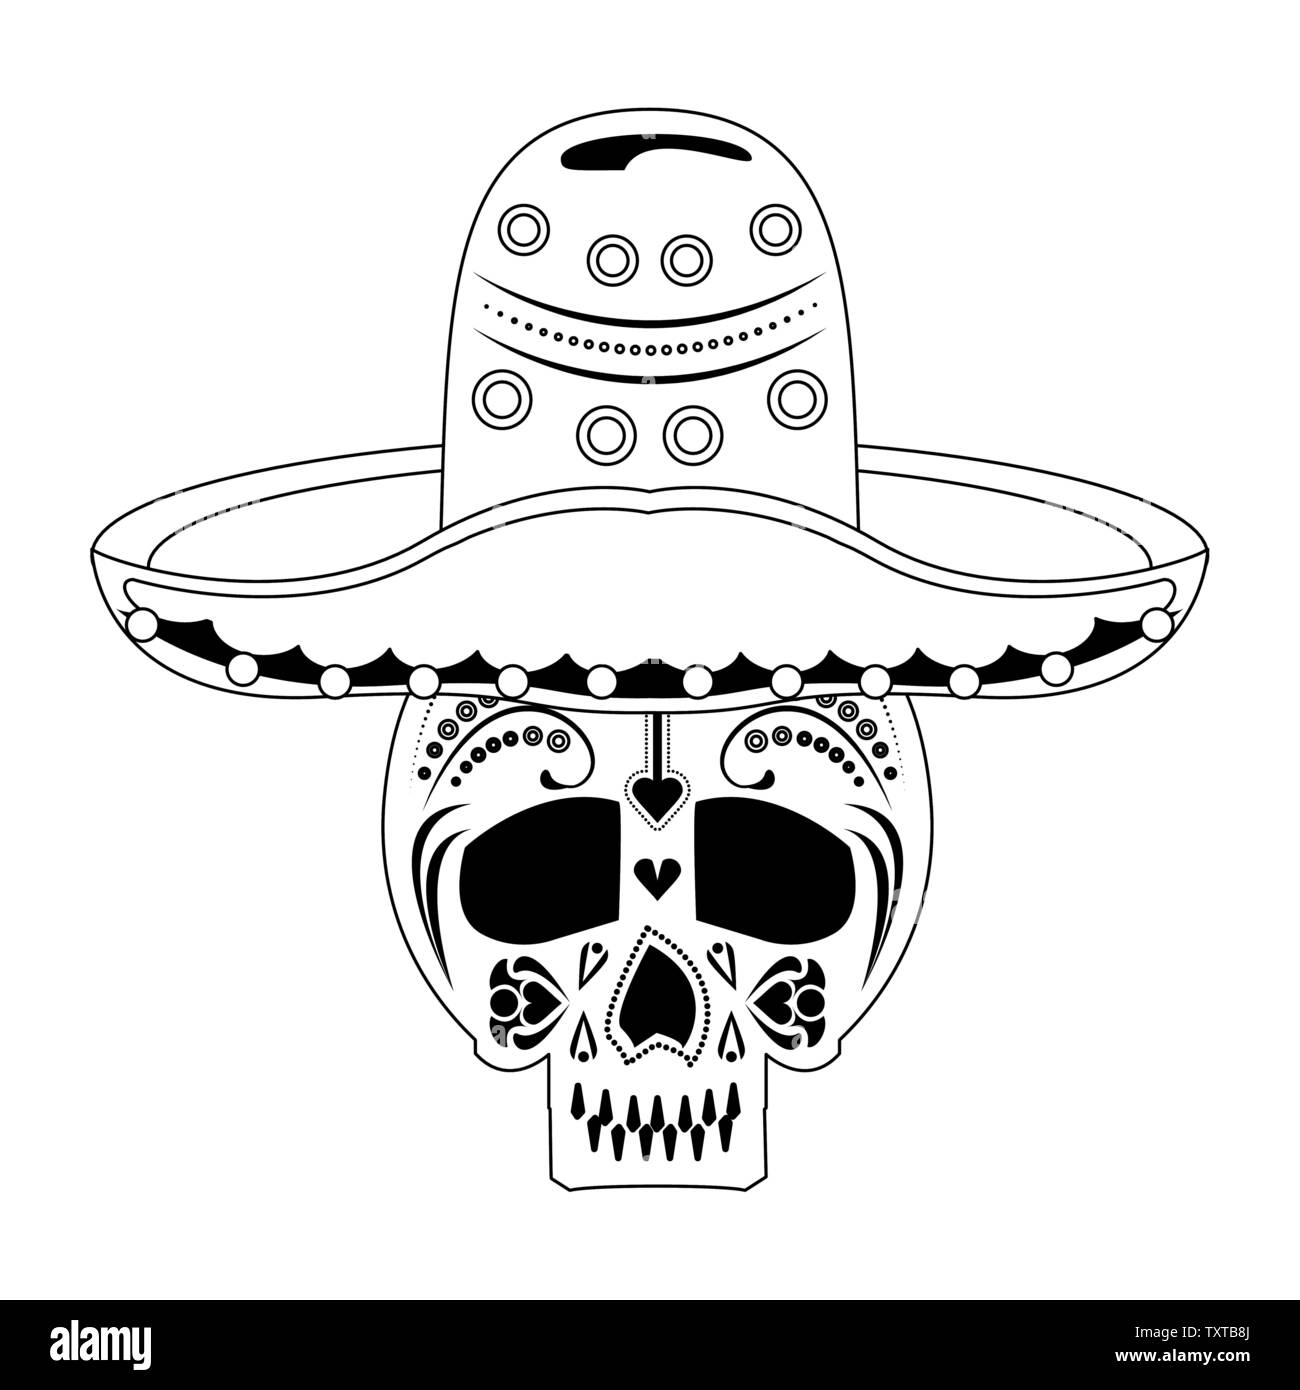 Mexico festival and mexican celebrations cartoons in black and white - Stock Image